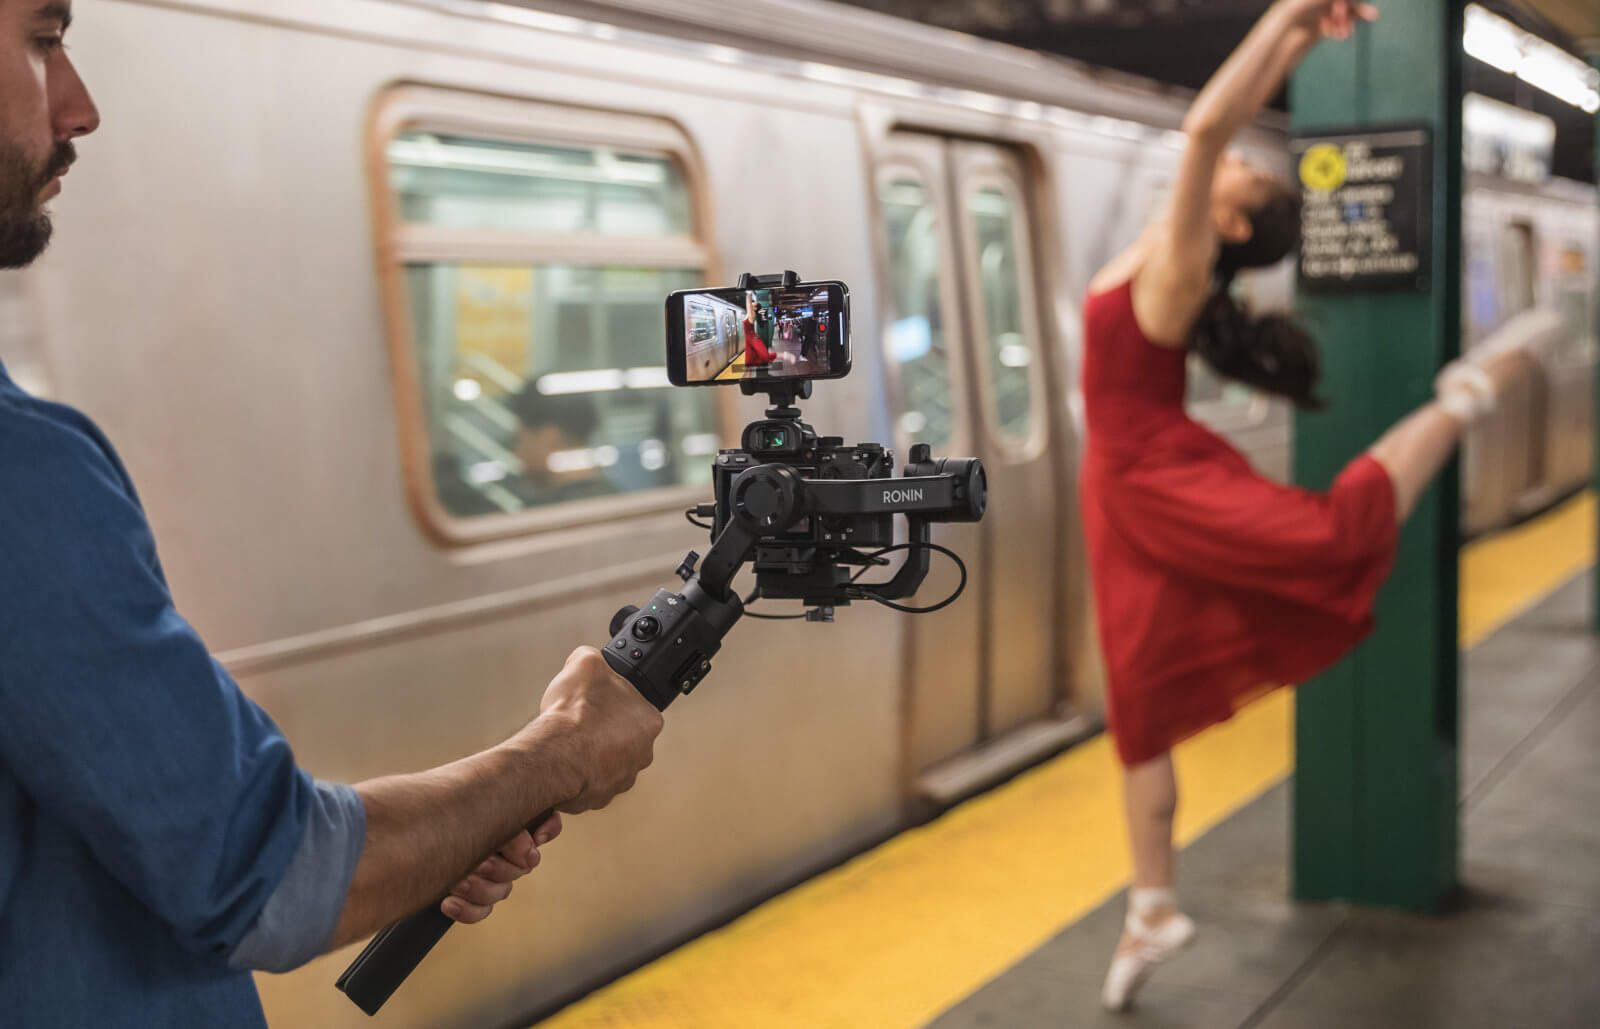 DJI's new Ronin-SC gimbal for mirrorless cameras sheds the weight